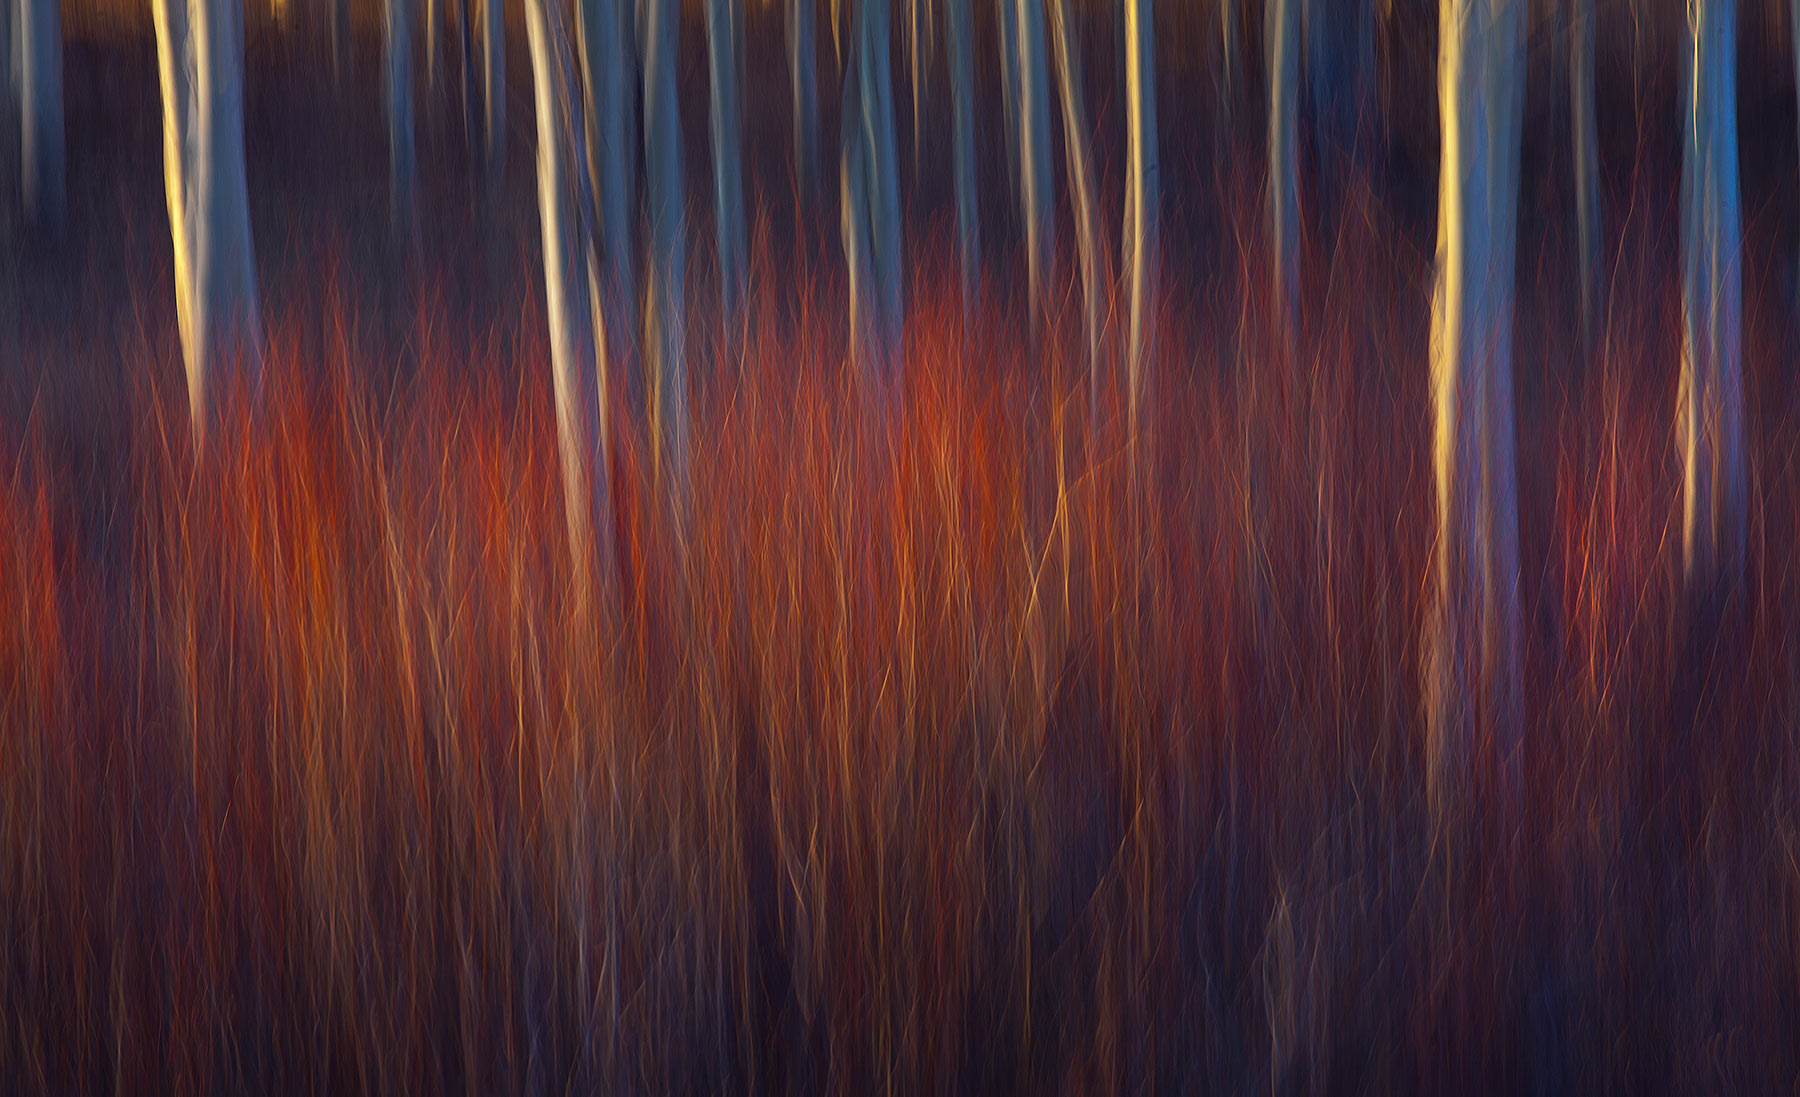 Willow, Aspen, Abstract, motion, photo